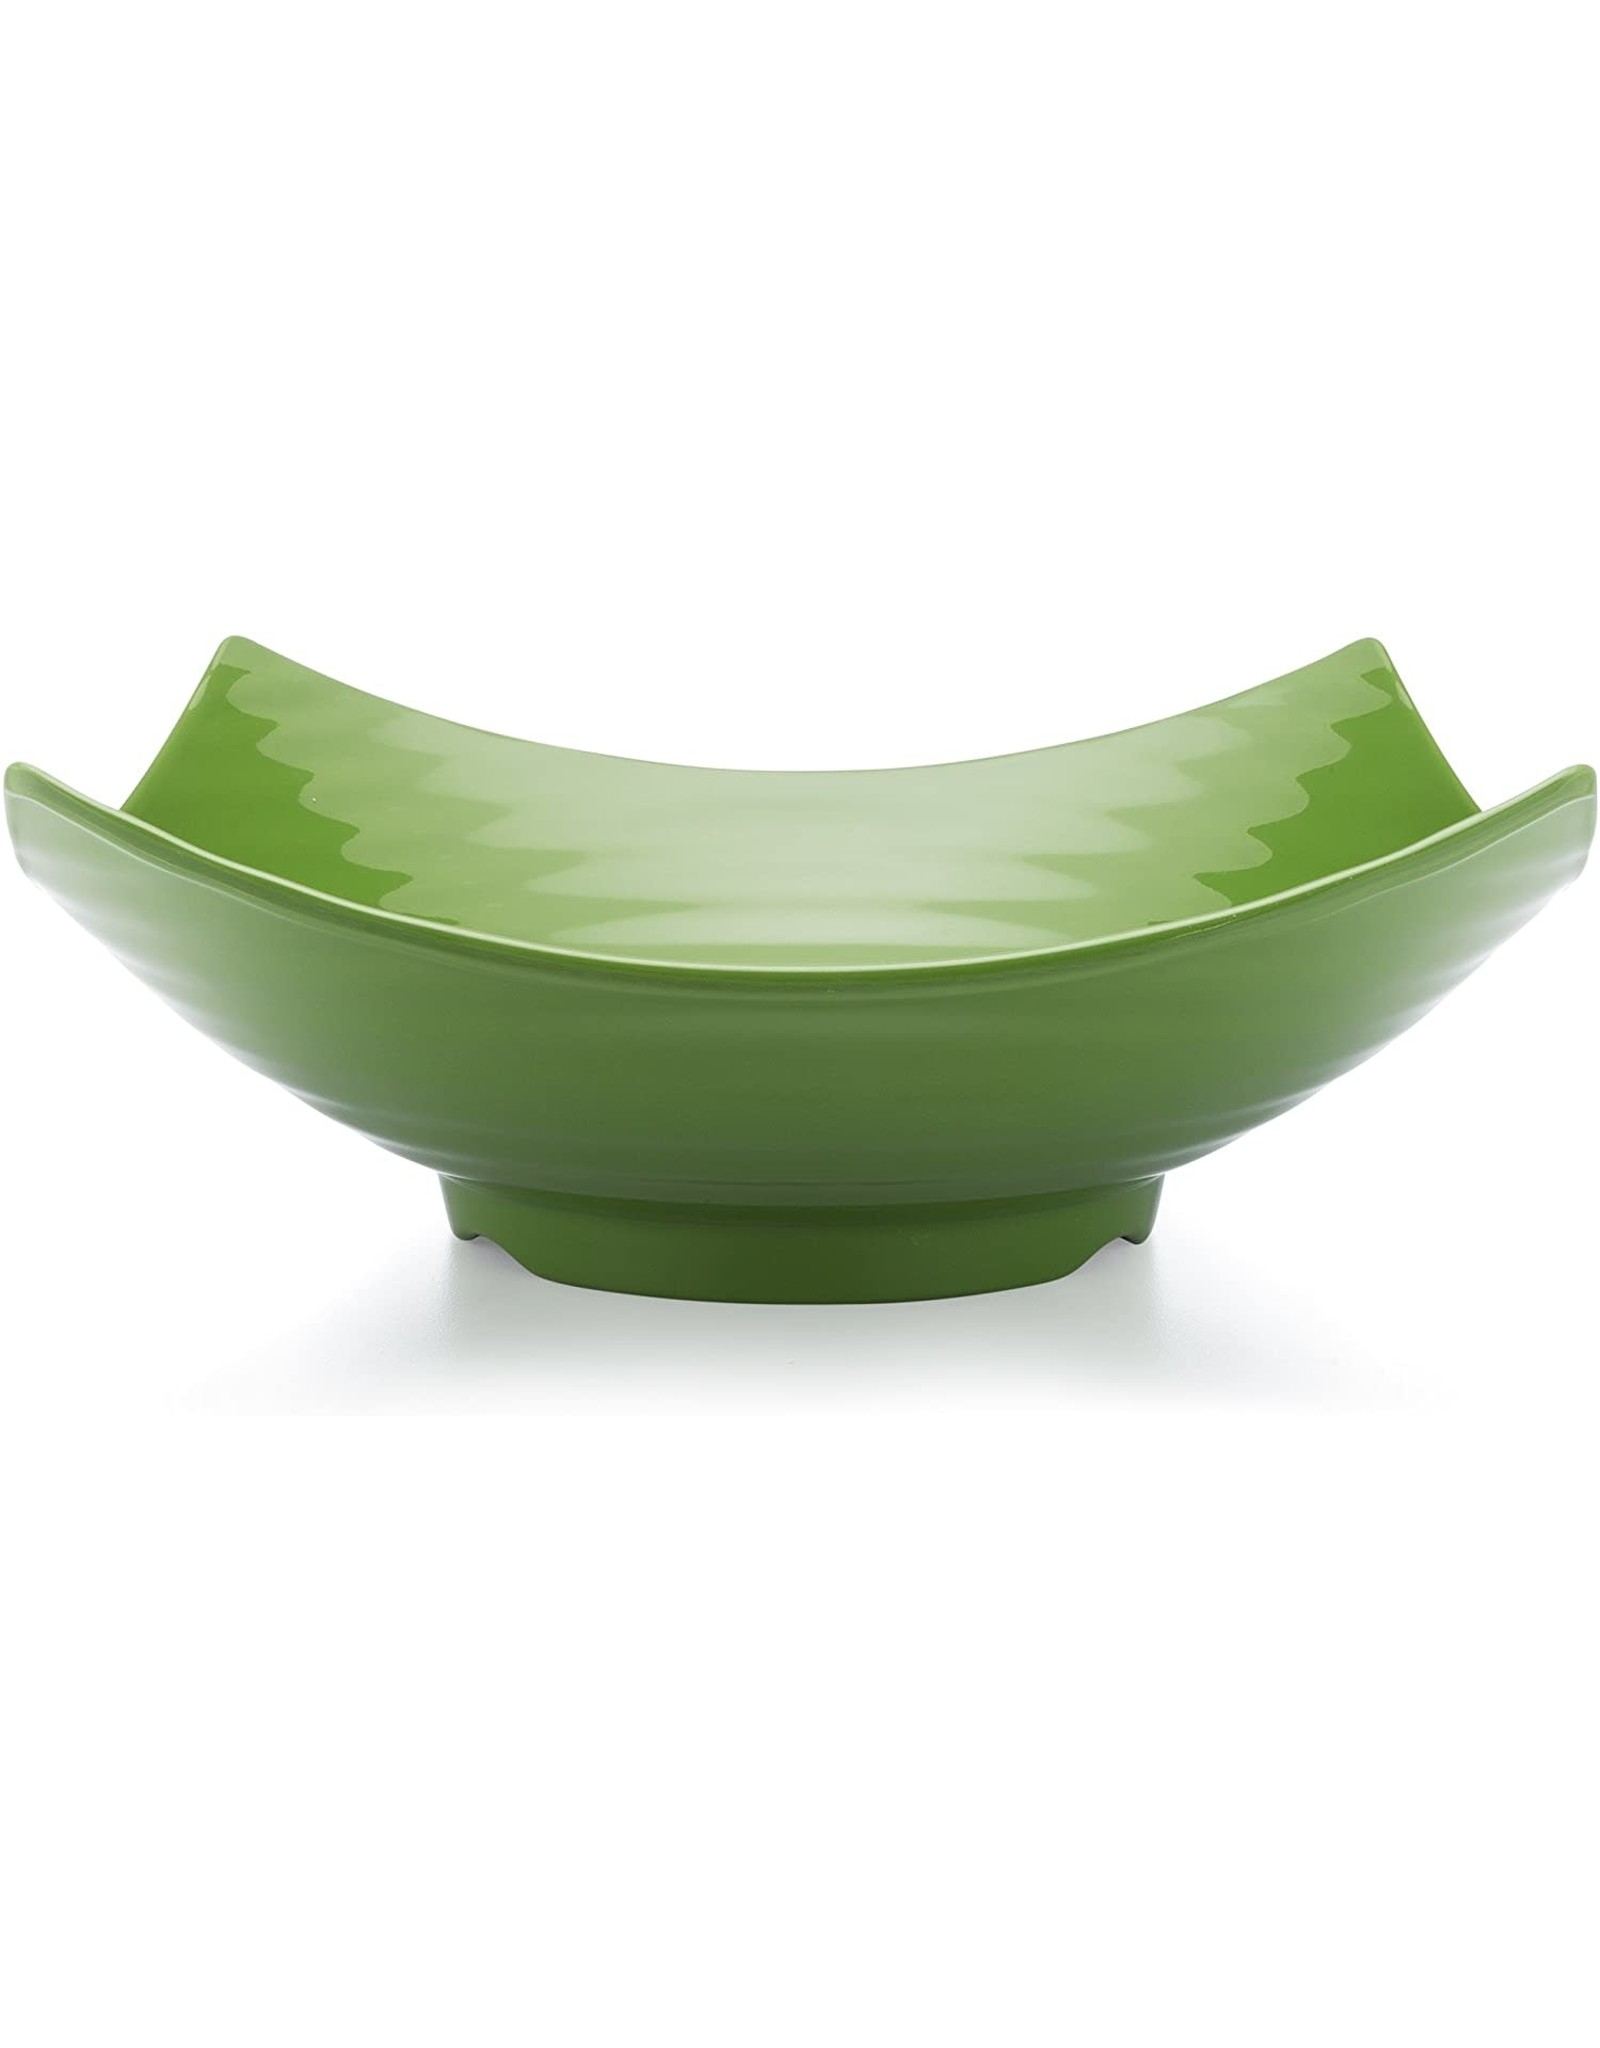 "Q-Squared QSQ Zen 12.5"" Green Serving Bowl"